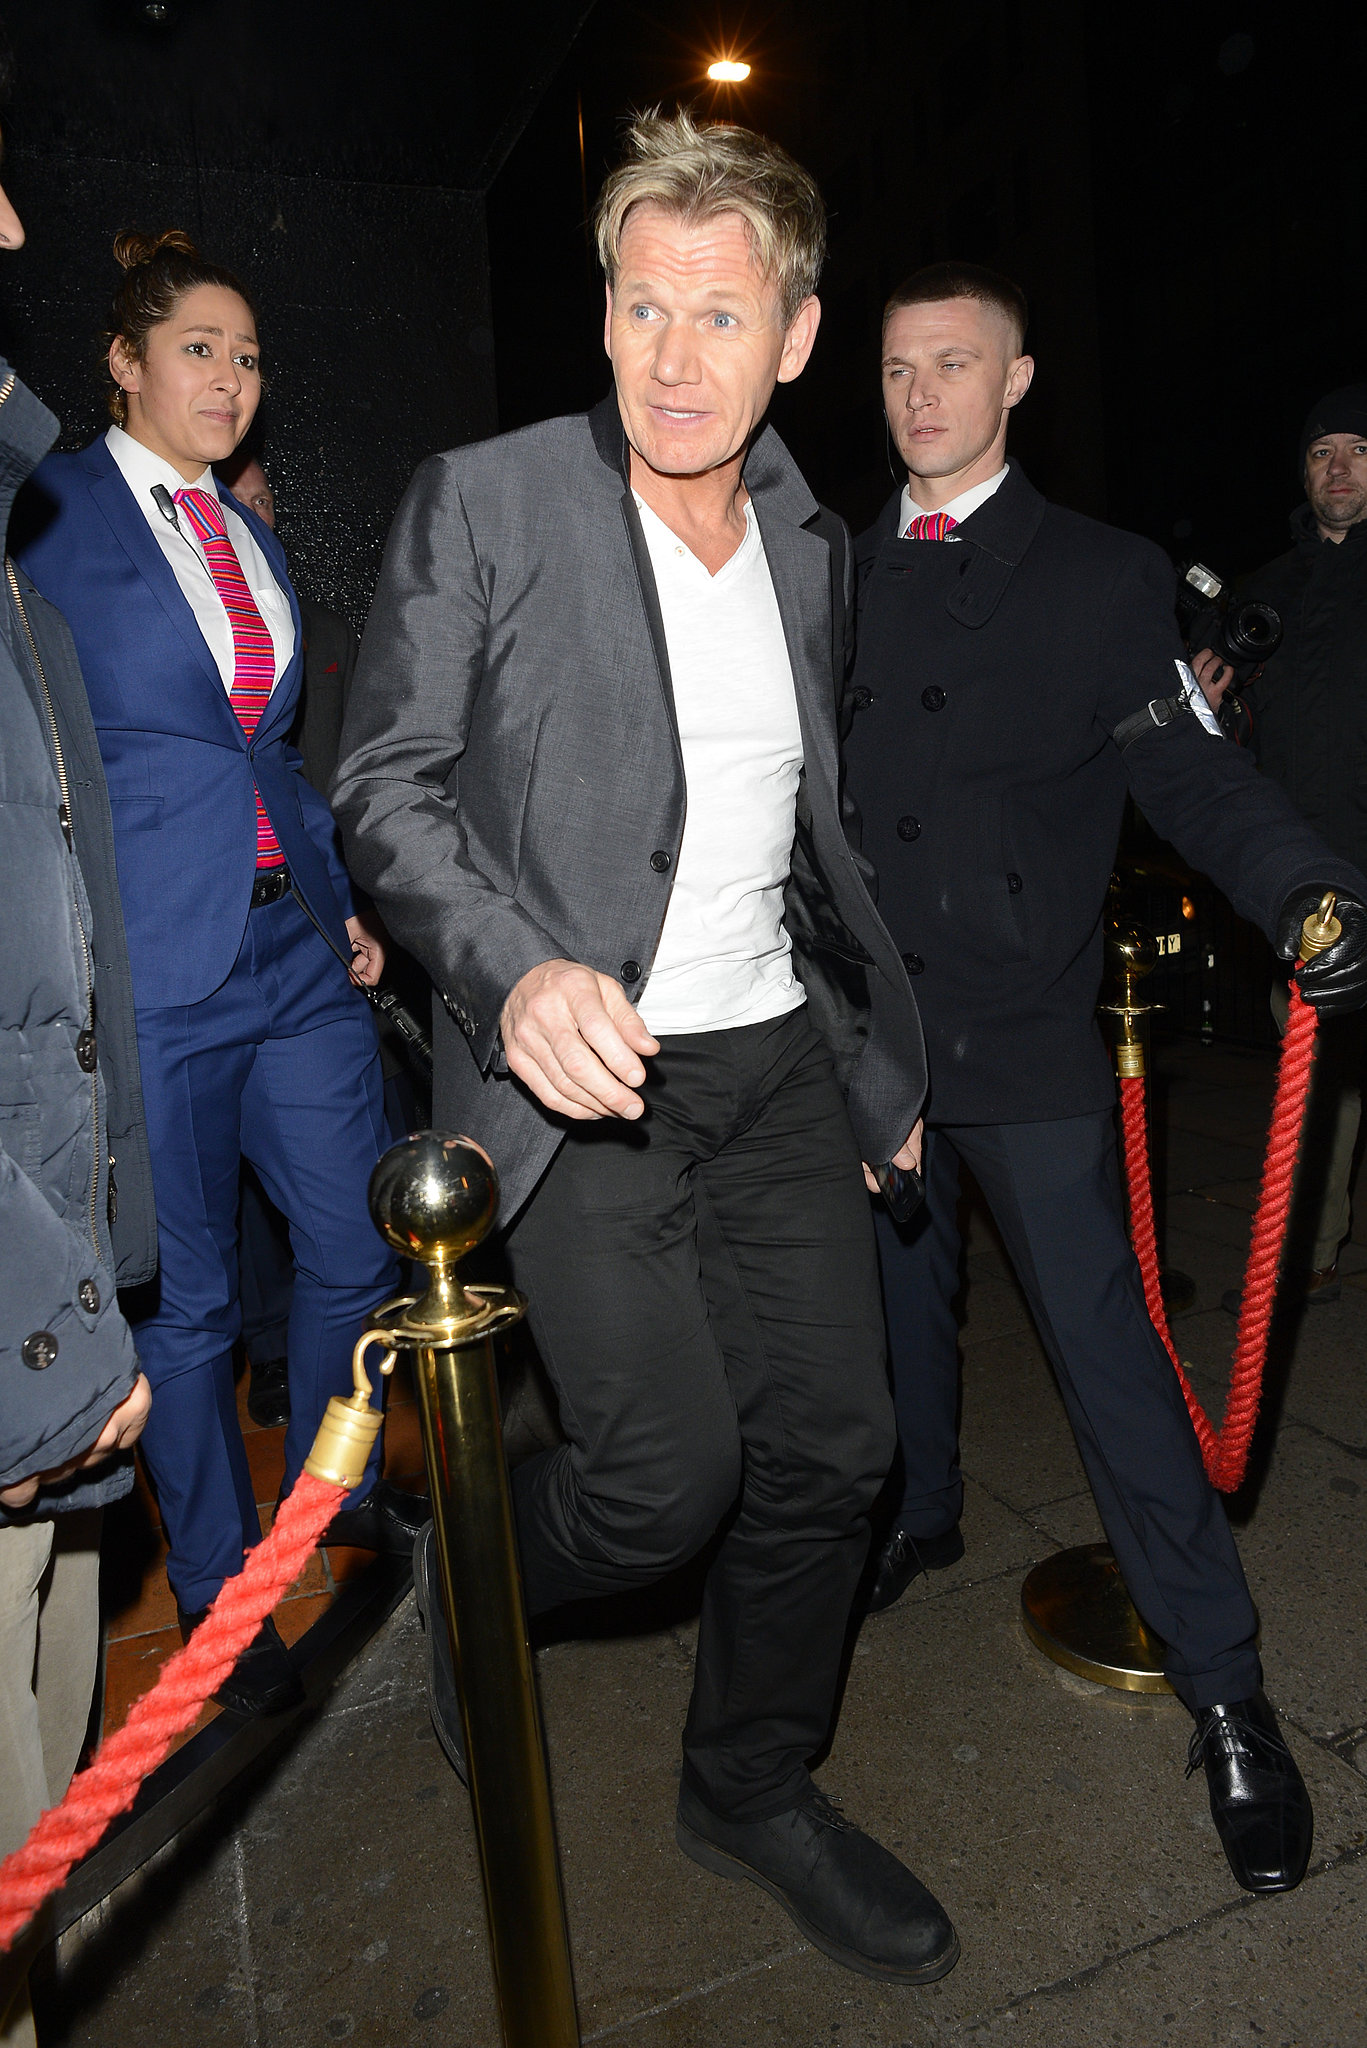 Gordon Ramsay hit Chakana Club with David, while their wives partied at a separate location.